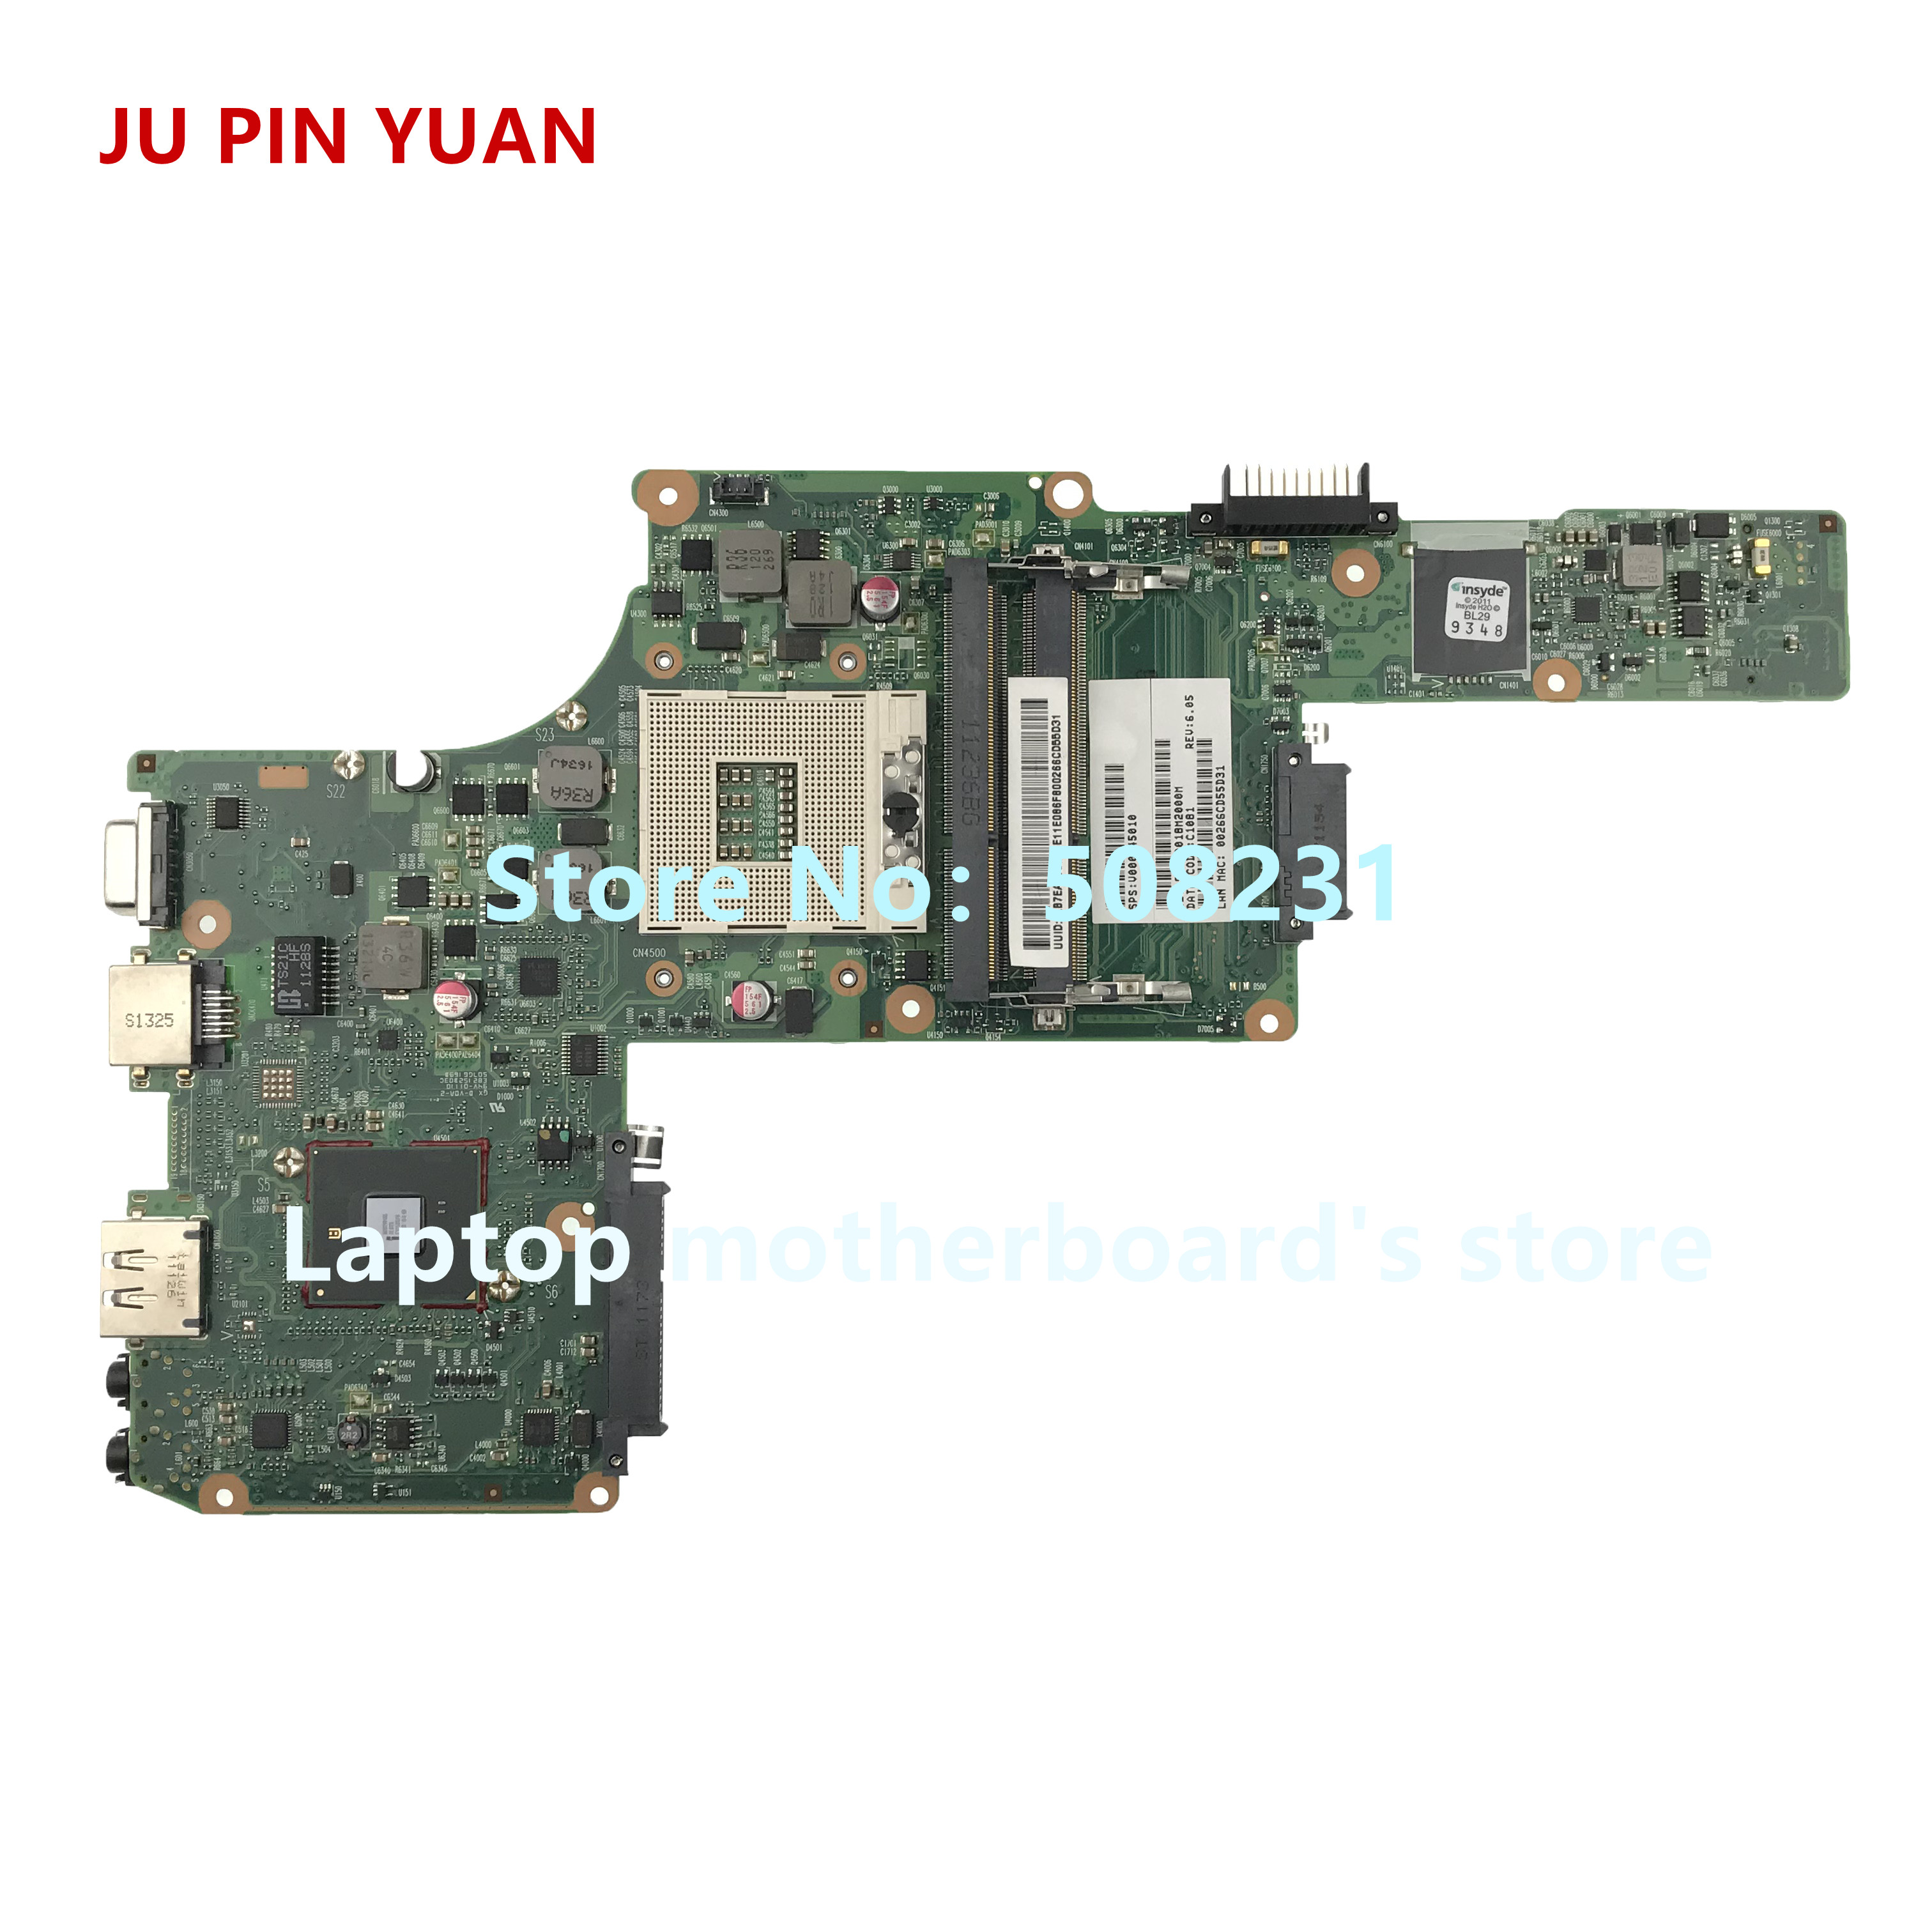 JU PIN YUAN V000245010 6050A2338401-MB-A02 mainboard For <font><b>toshiba</b></font> FOR satellite L630 <font><b>L635</b></font> Laptop <font><b>Motherboard</b></font> fully Tested image